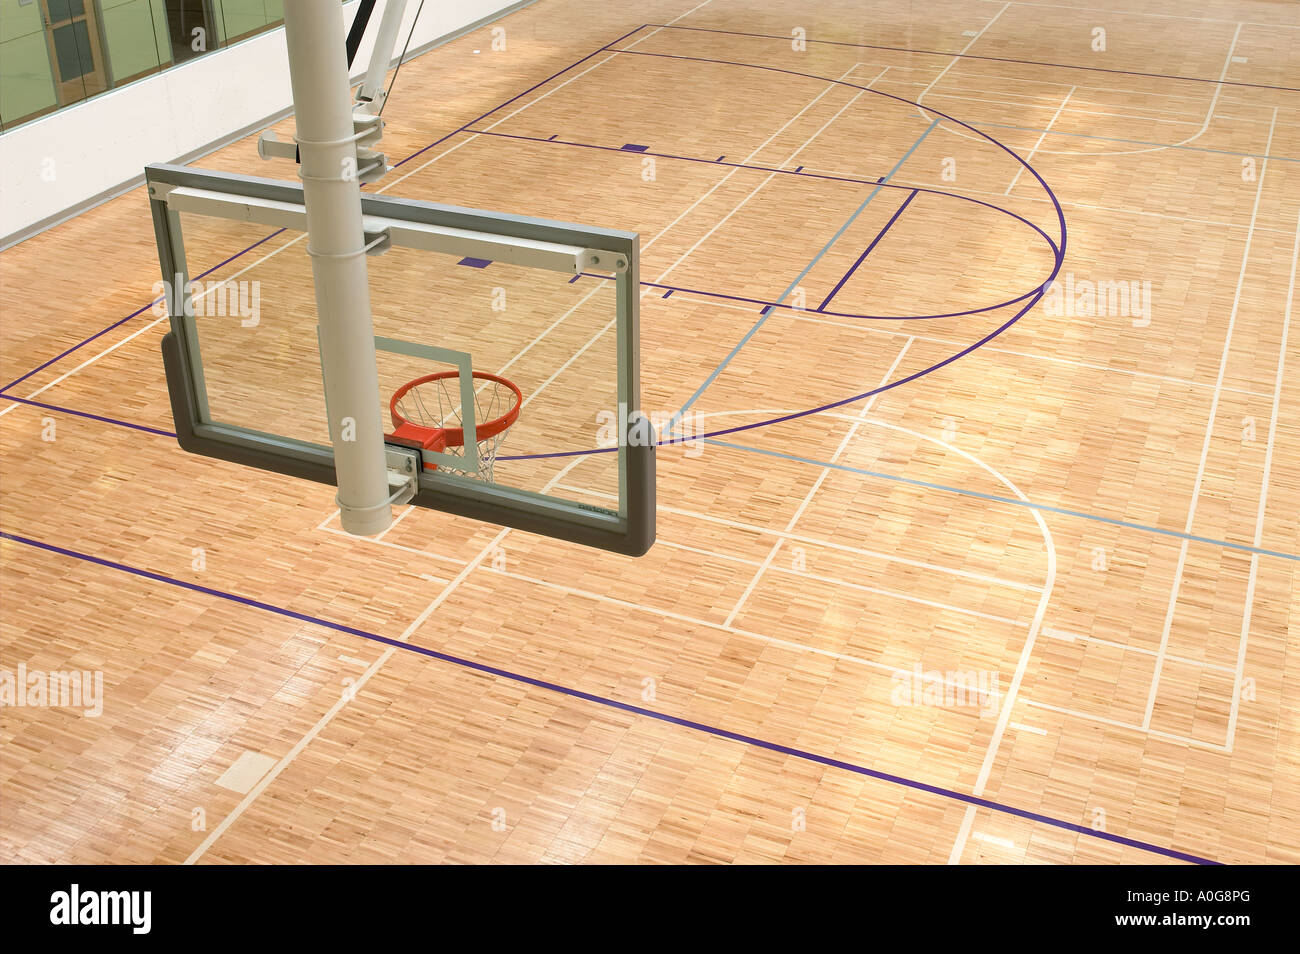 Basketball Court Aerial View High Resolution Stock Photography And Images Alamy